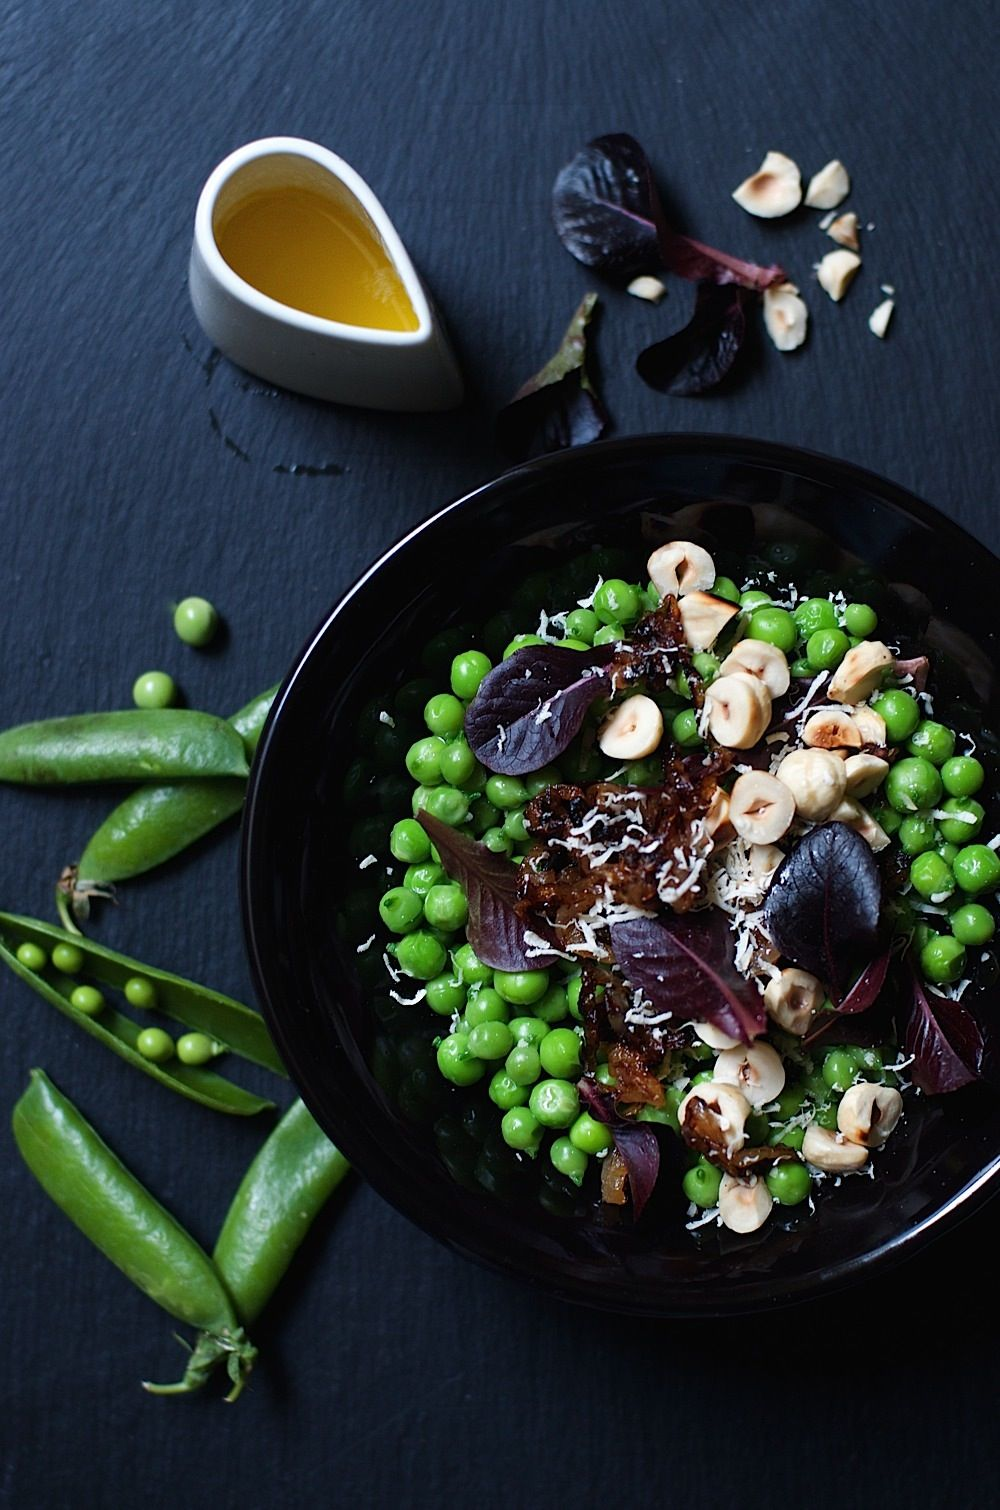 green peas with caramelized onion and hazelnuts.